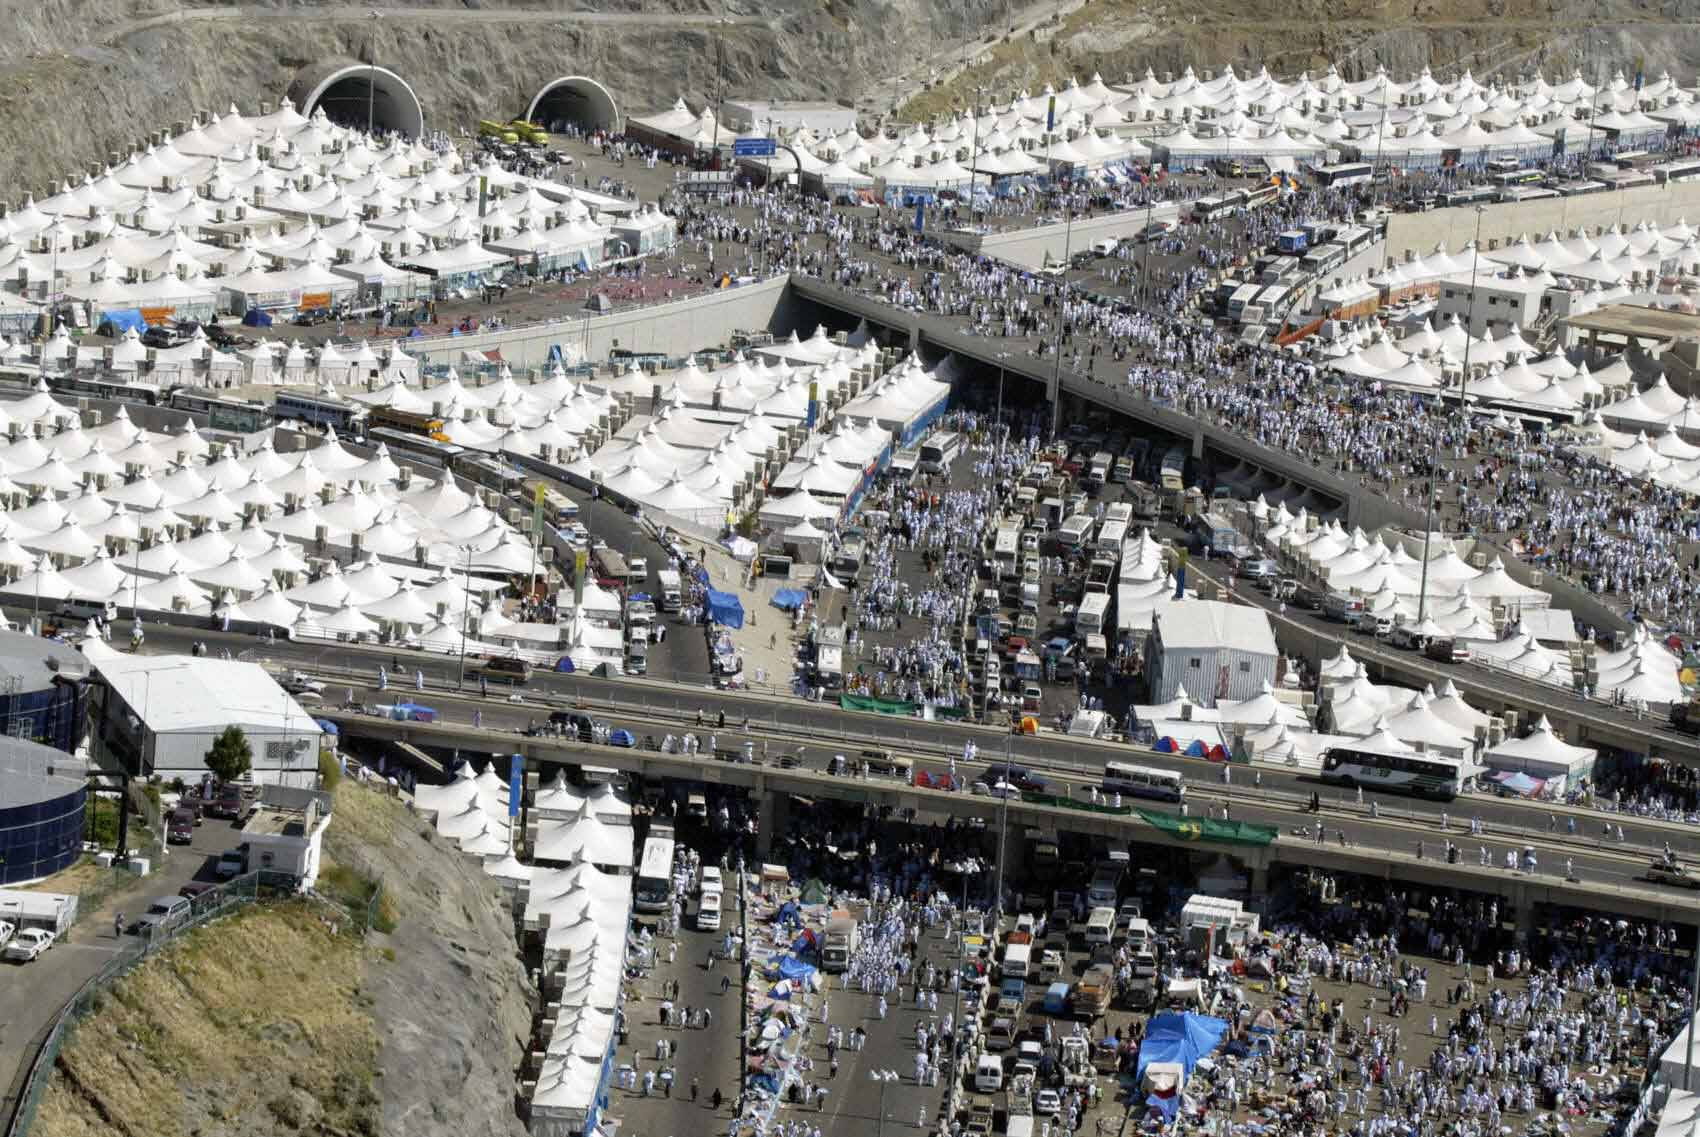 """An aerial view of Mina, near Mecca, shows scores of Muslim pilgrmis walking towards the spot where they stone the devil, one of the rituals of the last stage of the annual hajj pilgrimage, on second day of Eid Al-Adha, 02 February 2004. Saudi Arabia's King Fahd has ordered """"overall plans"""" to be drawn up to modernise the holy cities of Mecca and Medina after 251 pilgrims died in a stampede, according to the official Saudi media. AFP PHOTO/Awad AWAD"""